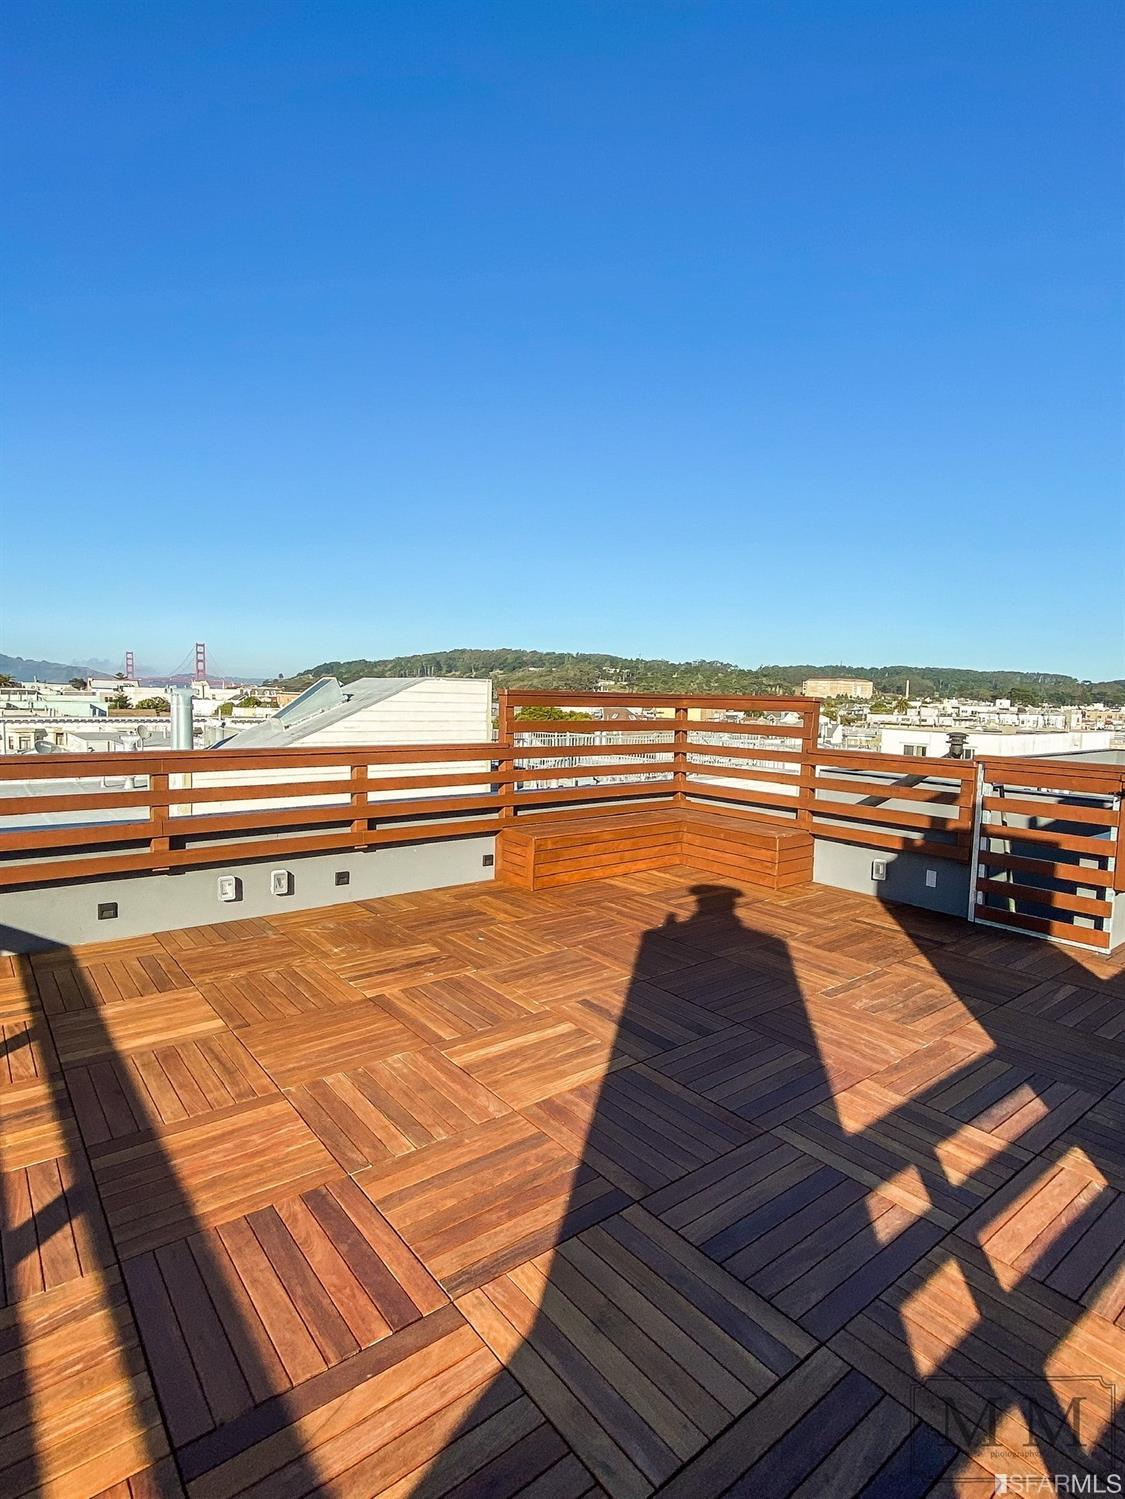 This stunning penthouse residence is truly a gem. A stunning glass retractable skylight rooftop opens to a spacious roof deck with hardwood decking and custom benches that boasts expansive views encompassing the Presidio, Golden Gate Bridge and Downtown San Francisco.  The 3 bed/2.5 bath residence includes luxurious features selected by a team of architects and interior designers. The unit is outfitted with white oak hardwood flooring, floor-to-ceiling windows in the living and dining rooms, a fireplace, CAT6 wirings, Nest thermostat, and dimming LED recessed lightings.  Owners will enjoy a level of finishes in this one-of-a-kind home including a Chefs' kitchen island that is made of two large slabs of marble, top-of-the line appliances and wine cooler, and custom  kitchen cabinetry. The master suite features a walk-in closet and an adjoining hardwood deck balcony. Revel in an elegant master bathroom, custom marble mosaic flooring, a freestanding tub, and a extra-long sink for two.